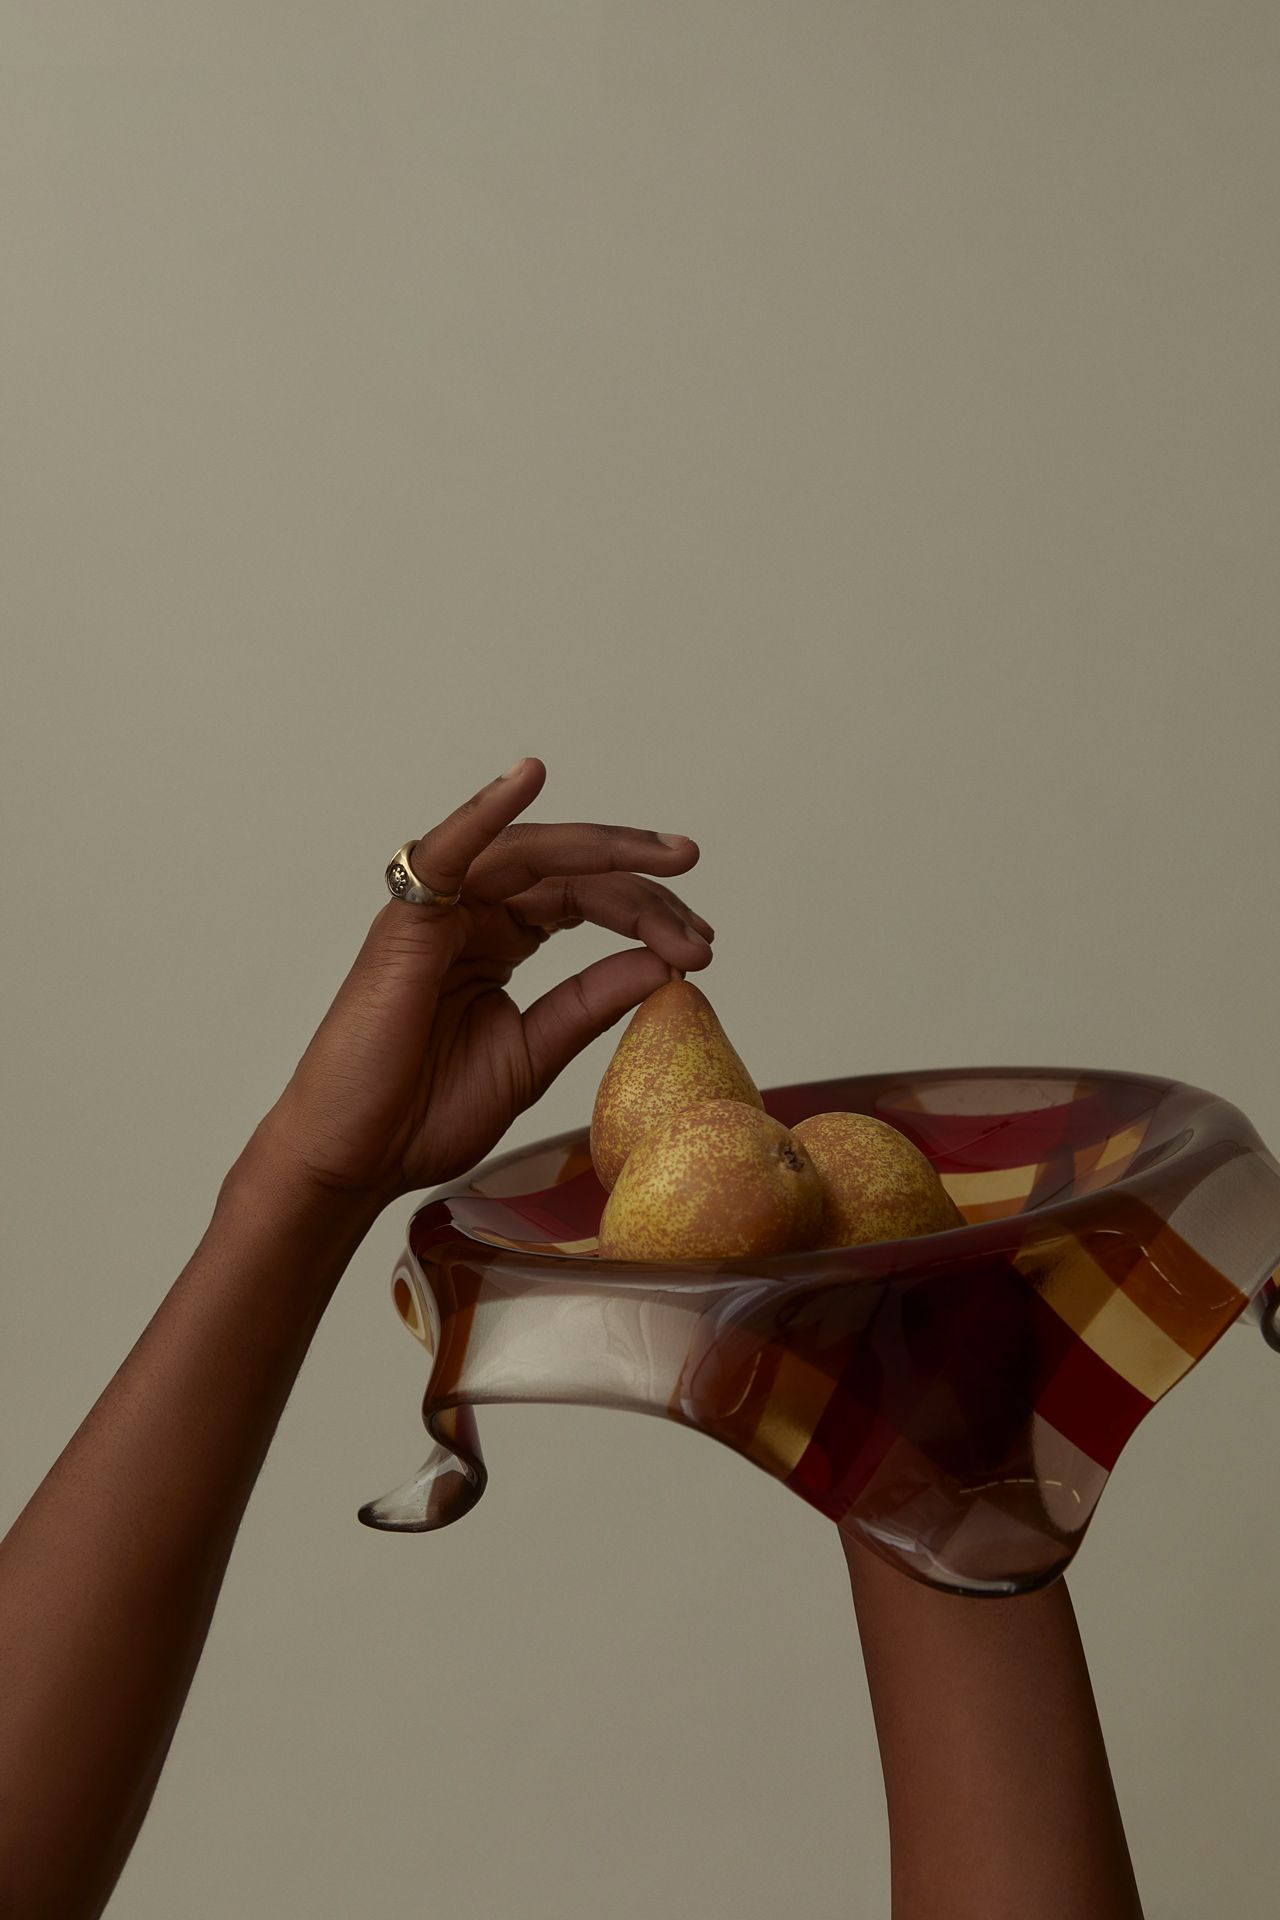 black hands holding plate of pears on light green background photographed by Kelly Jacob for LEV